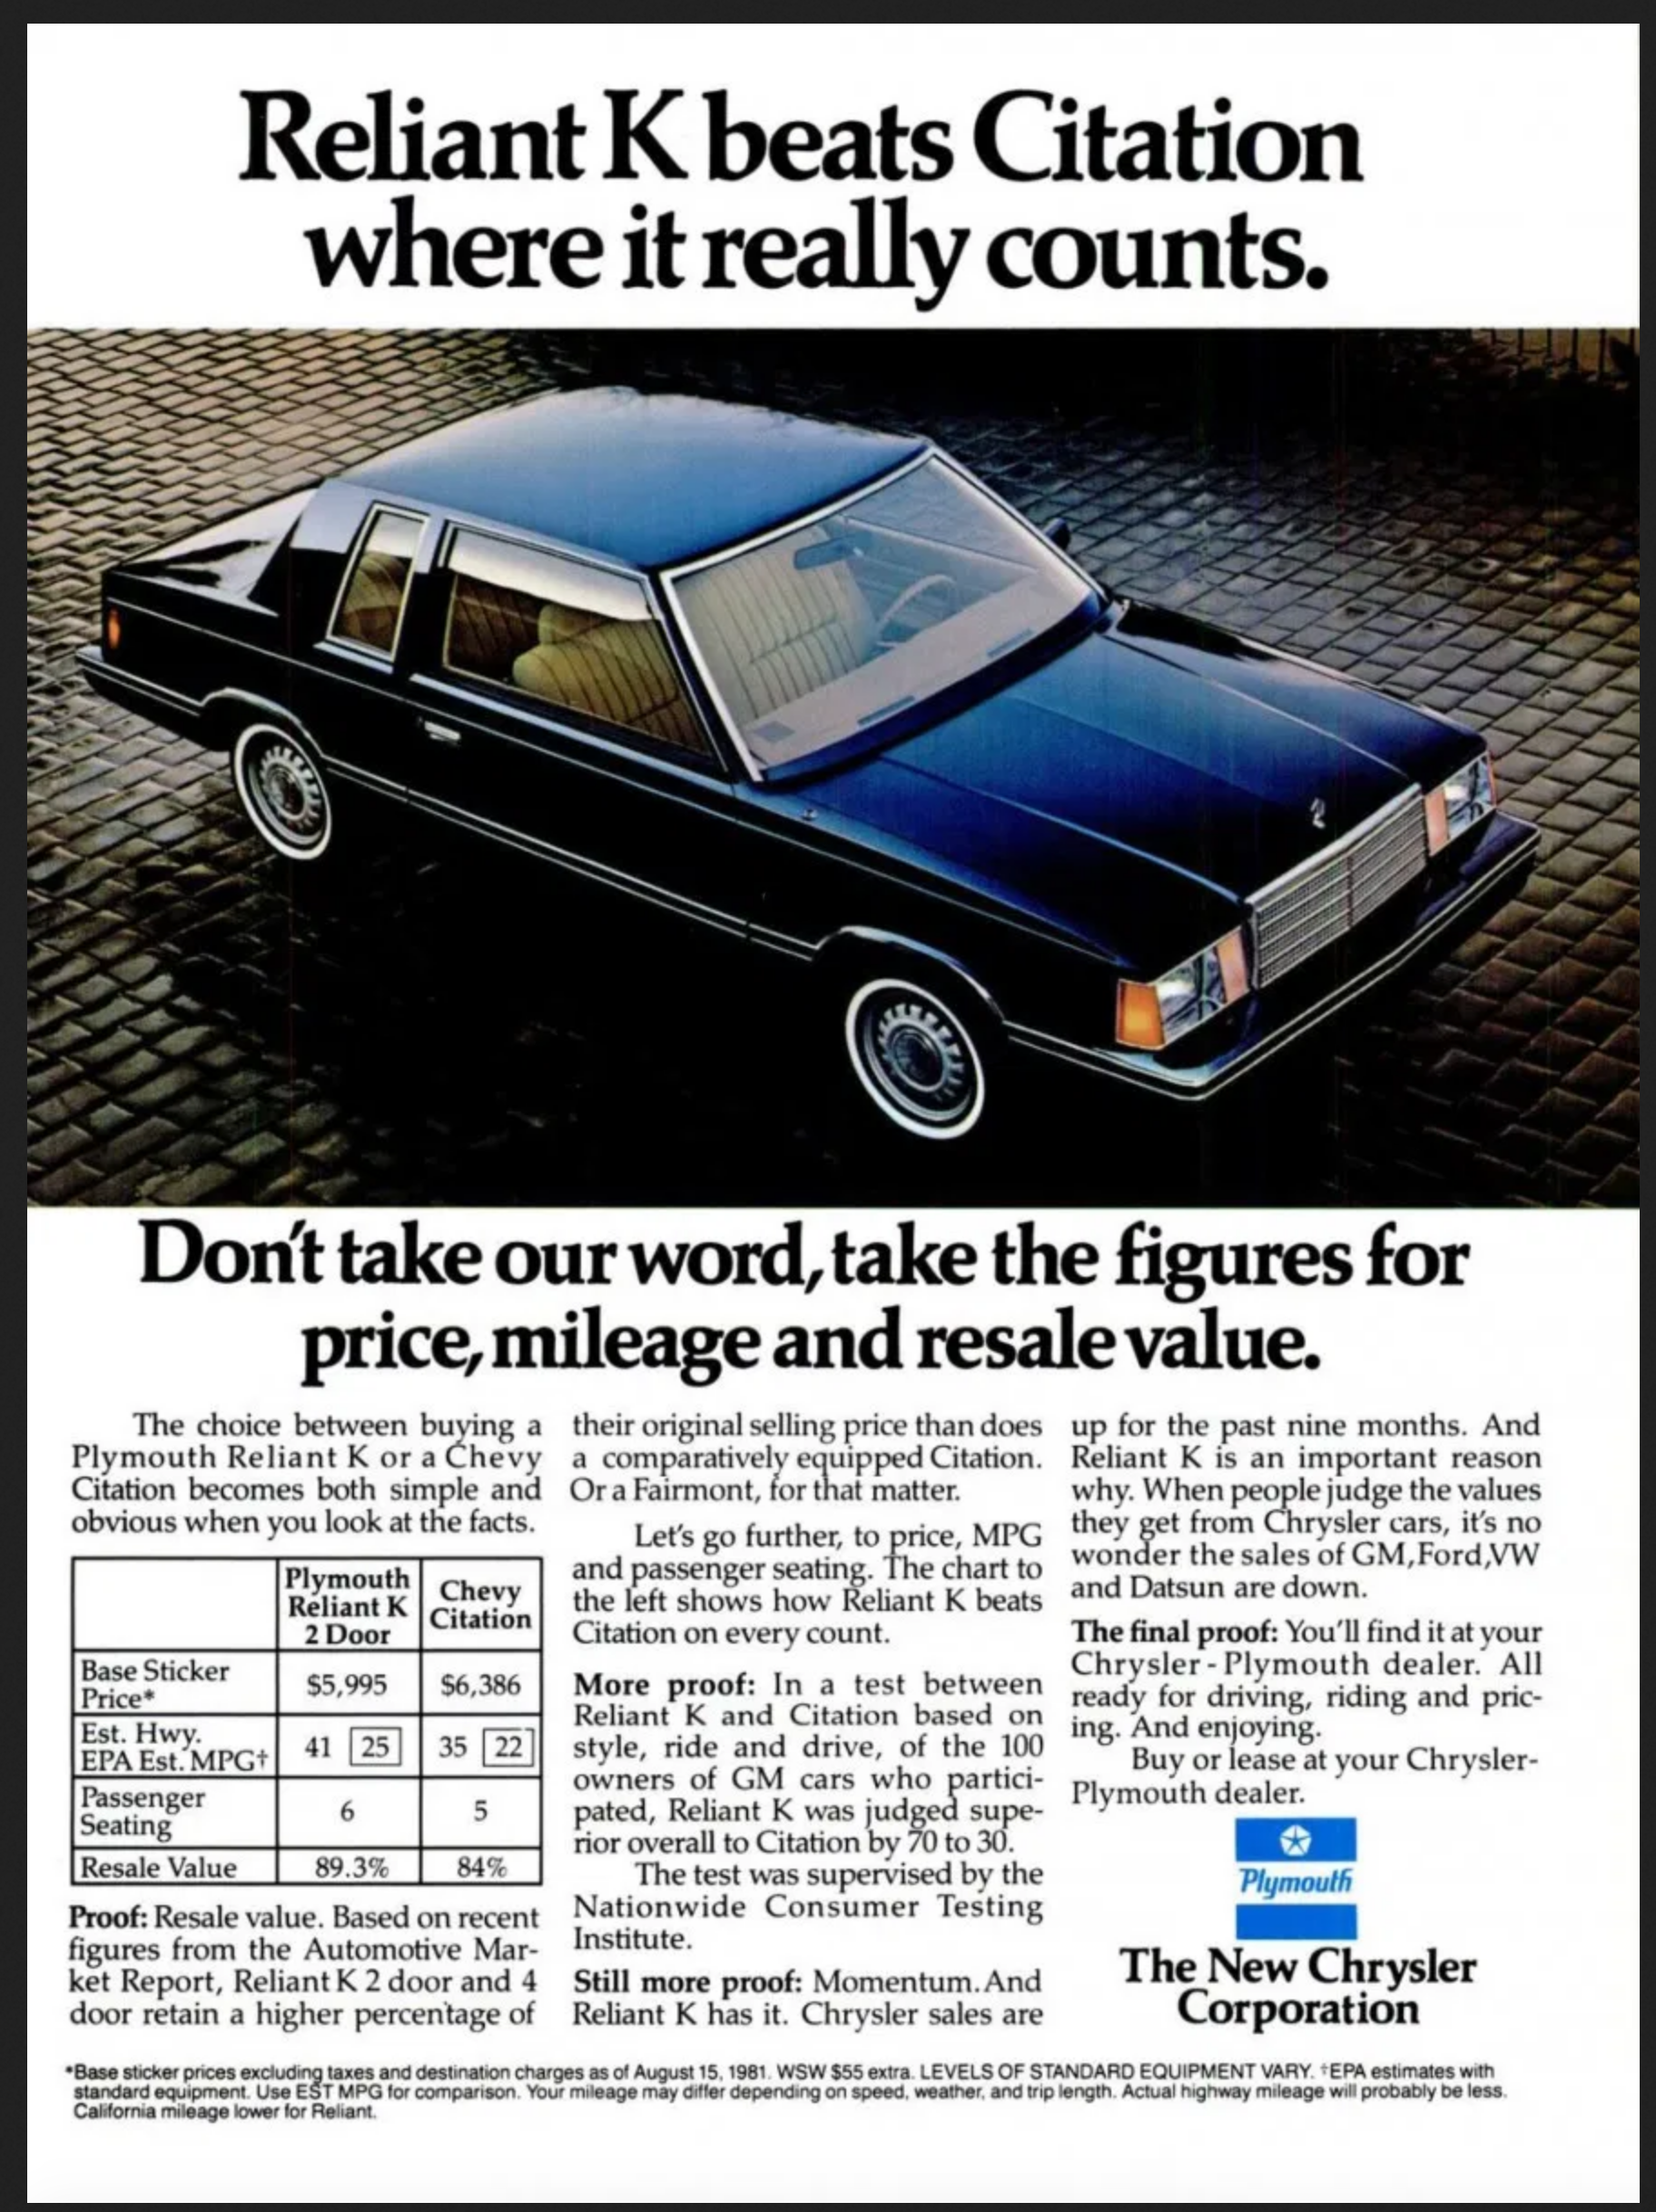 K-Car Ad, Plymouth Reliant Ad